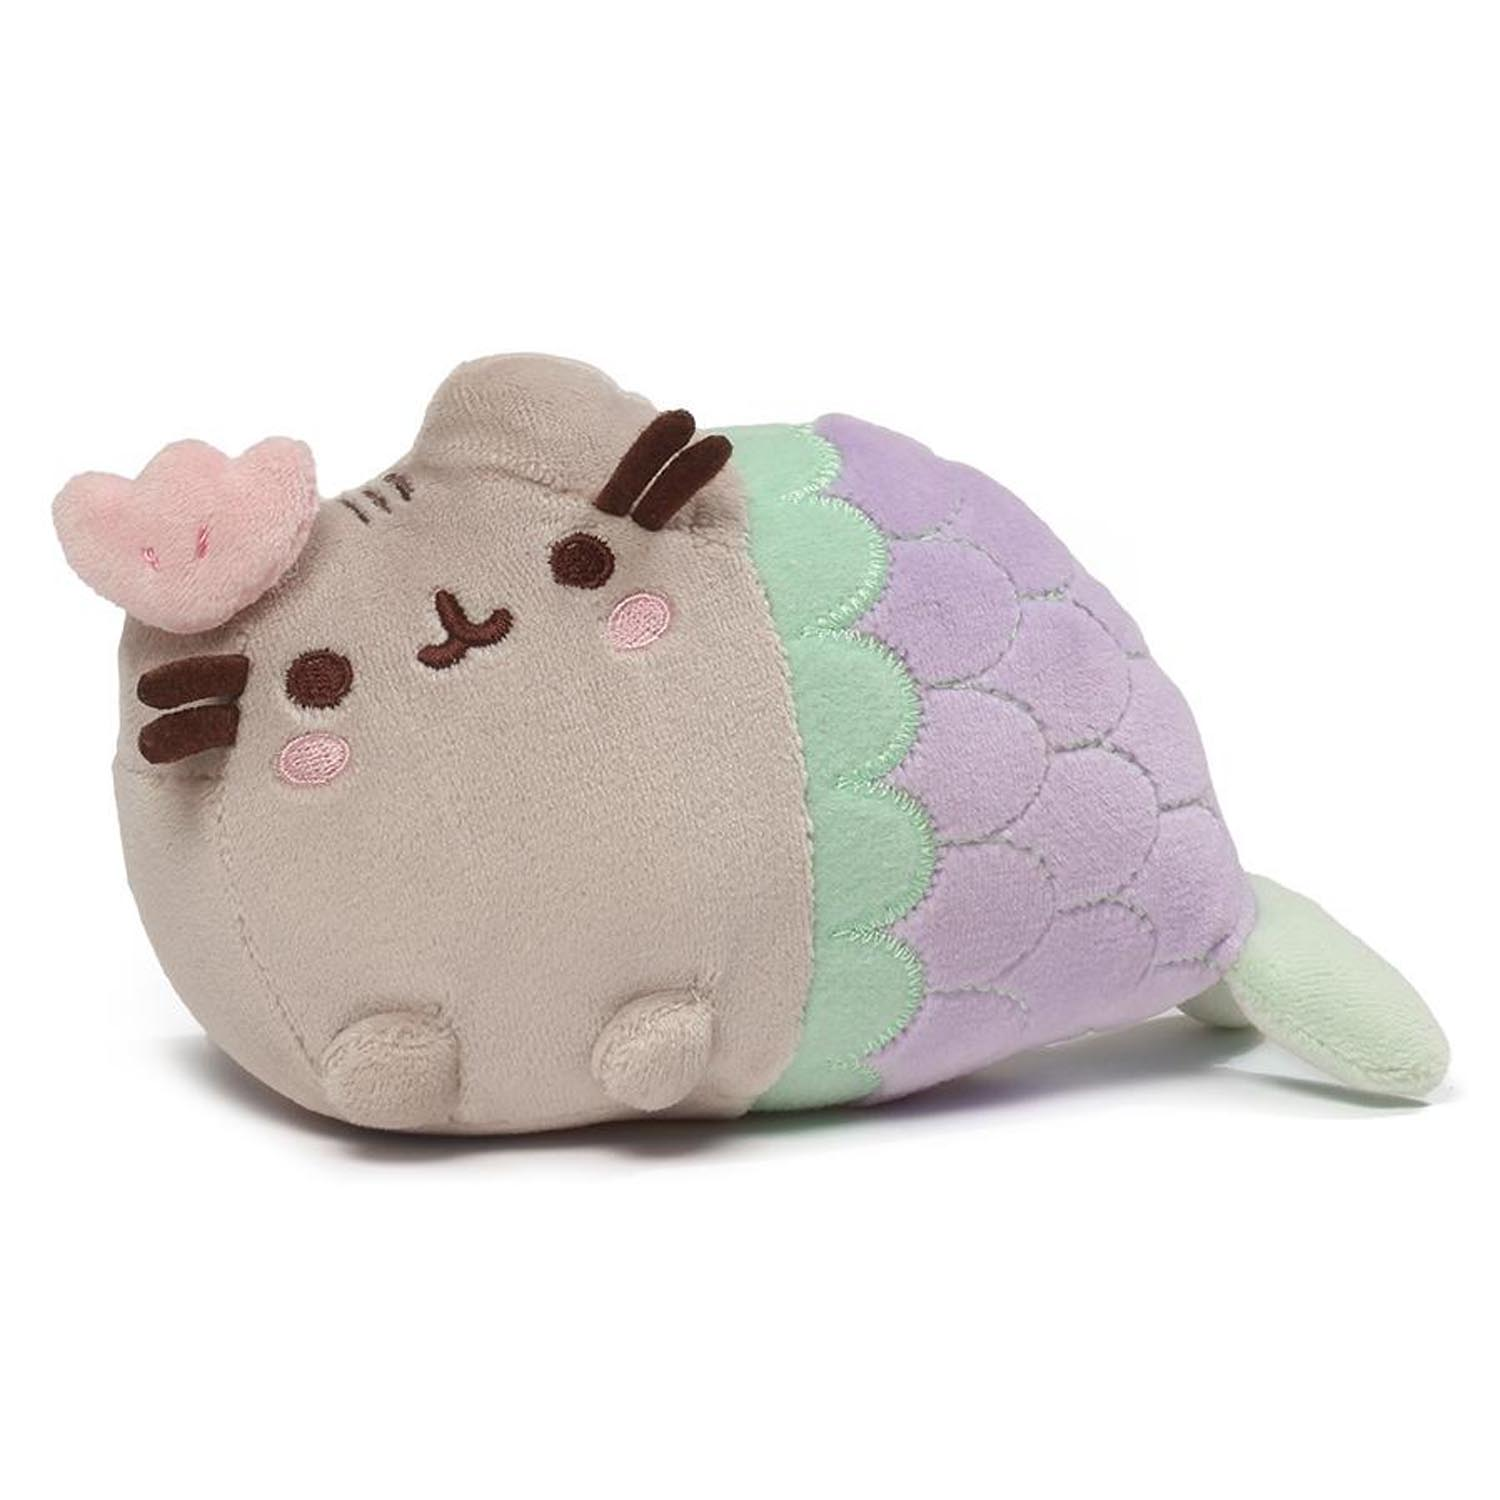 Pusheen The Cat Mermaid Clam Shell Purple Soft Plush Gund 18cm